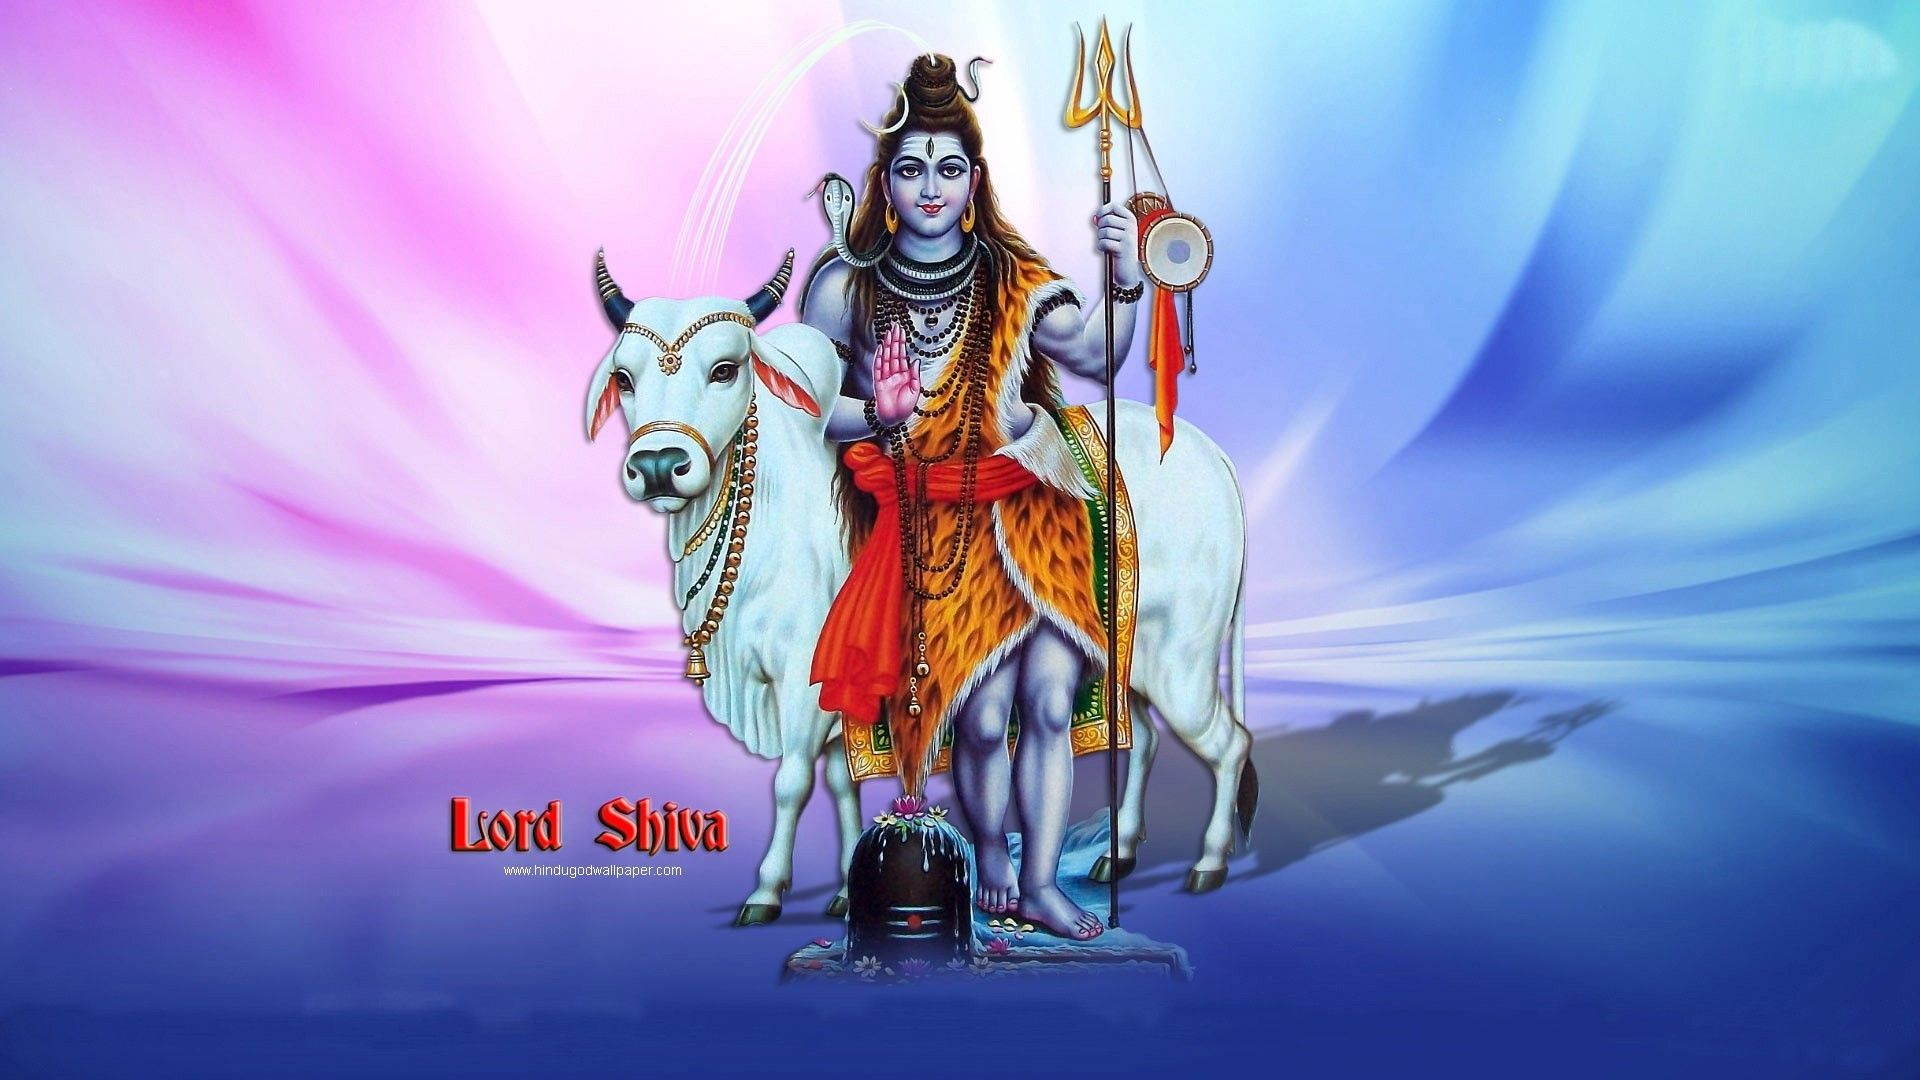 1920x1080 Shiva Hd Wallpapers 1080p Pictures Images Hd Lord Shiva Hd Wallpaper Shiva Wallpaper Lord Shiva